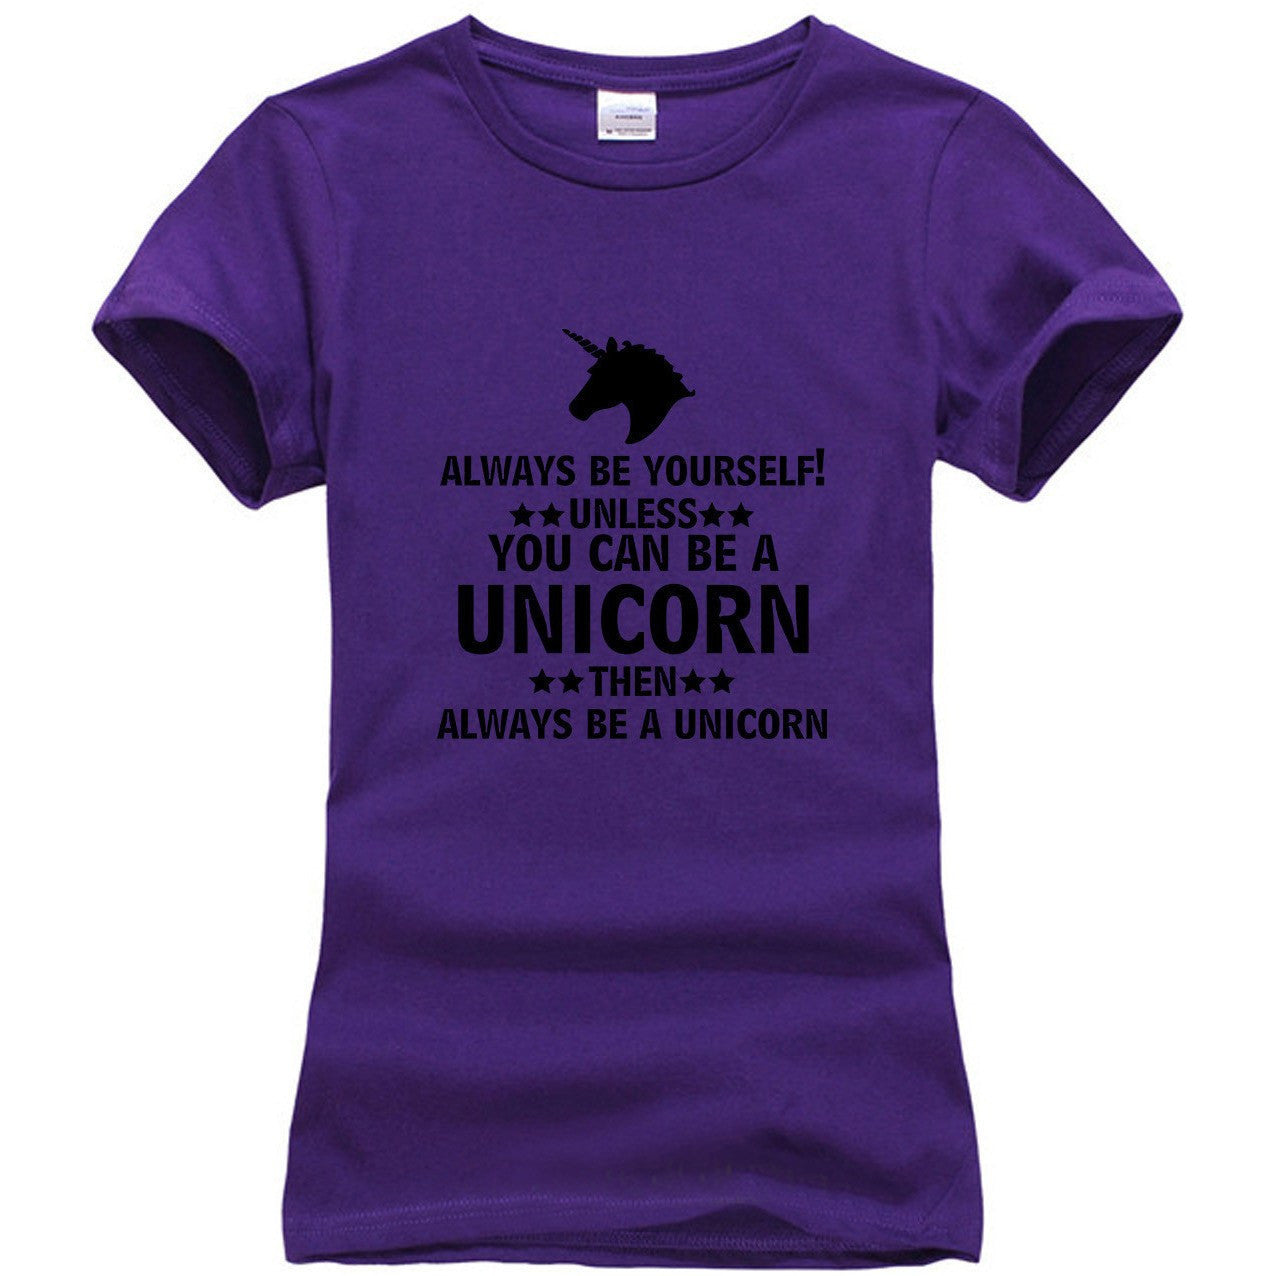 Always Be Yourself Unless You Can Be A Unicorn Tee - Rave Rebel